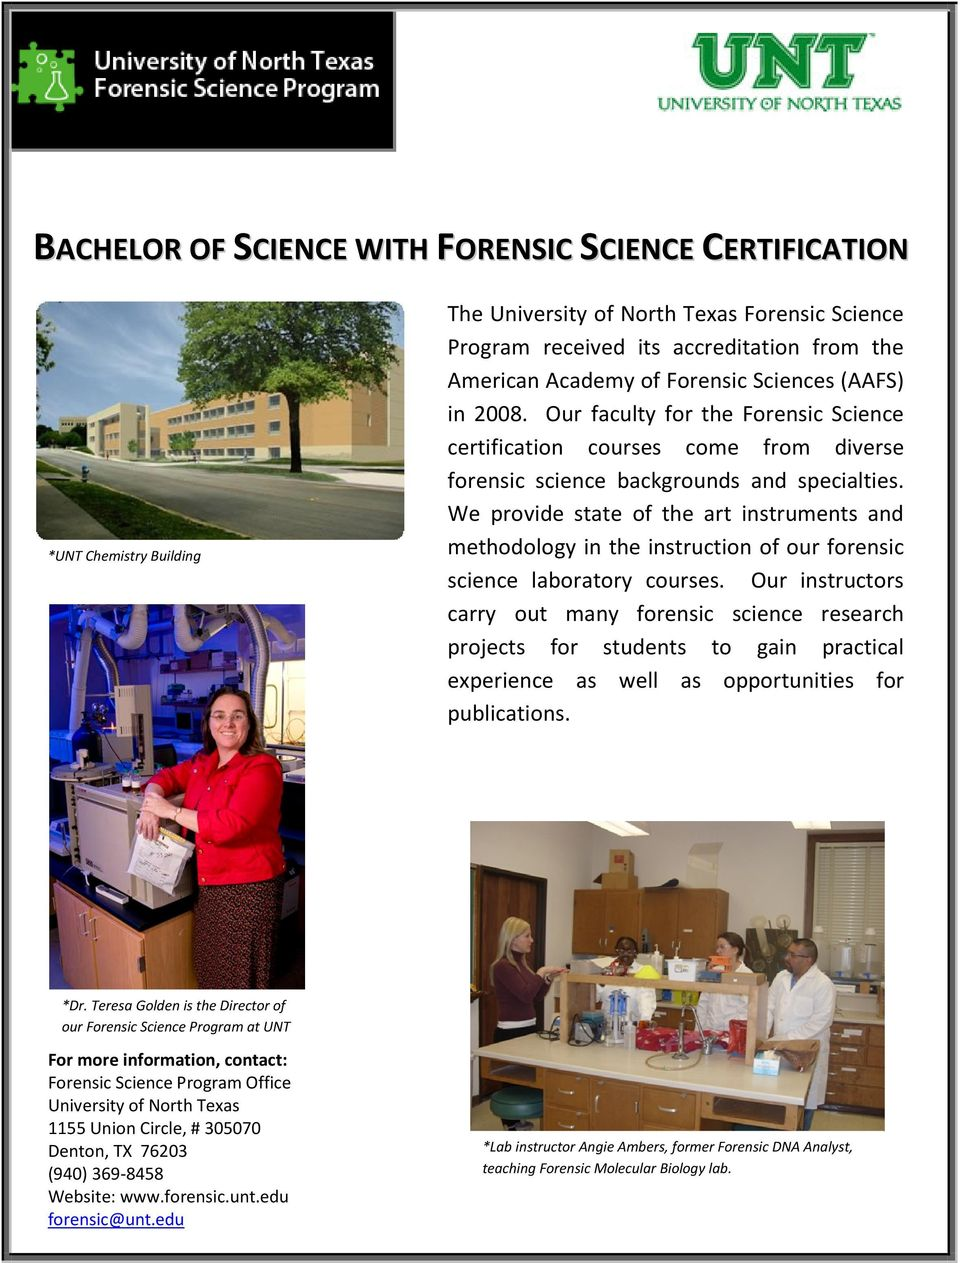 We provide state of the art instruments and methodology in the instruction of our forensic science laboratory courses.